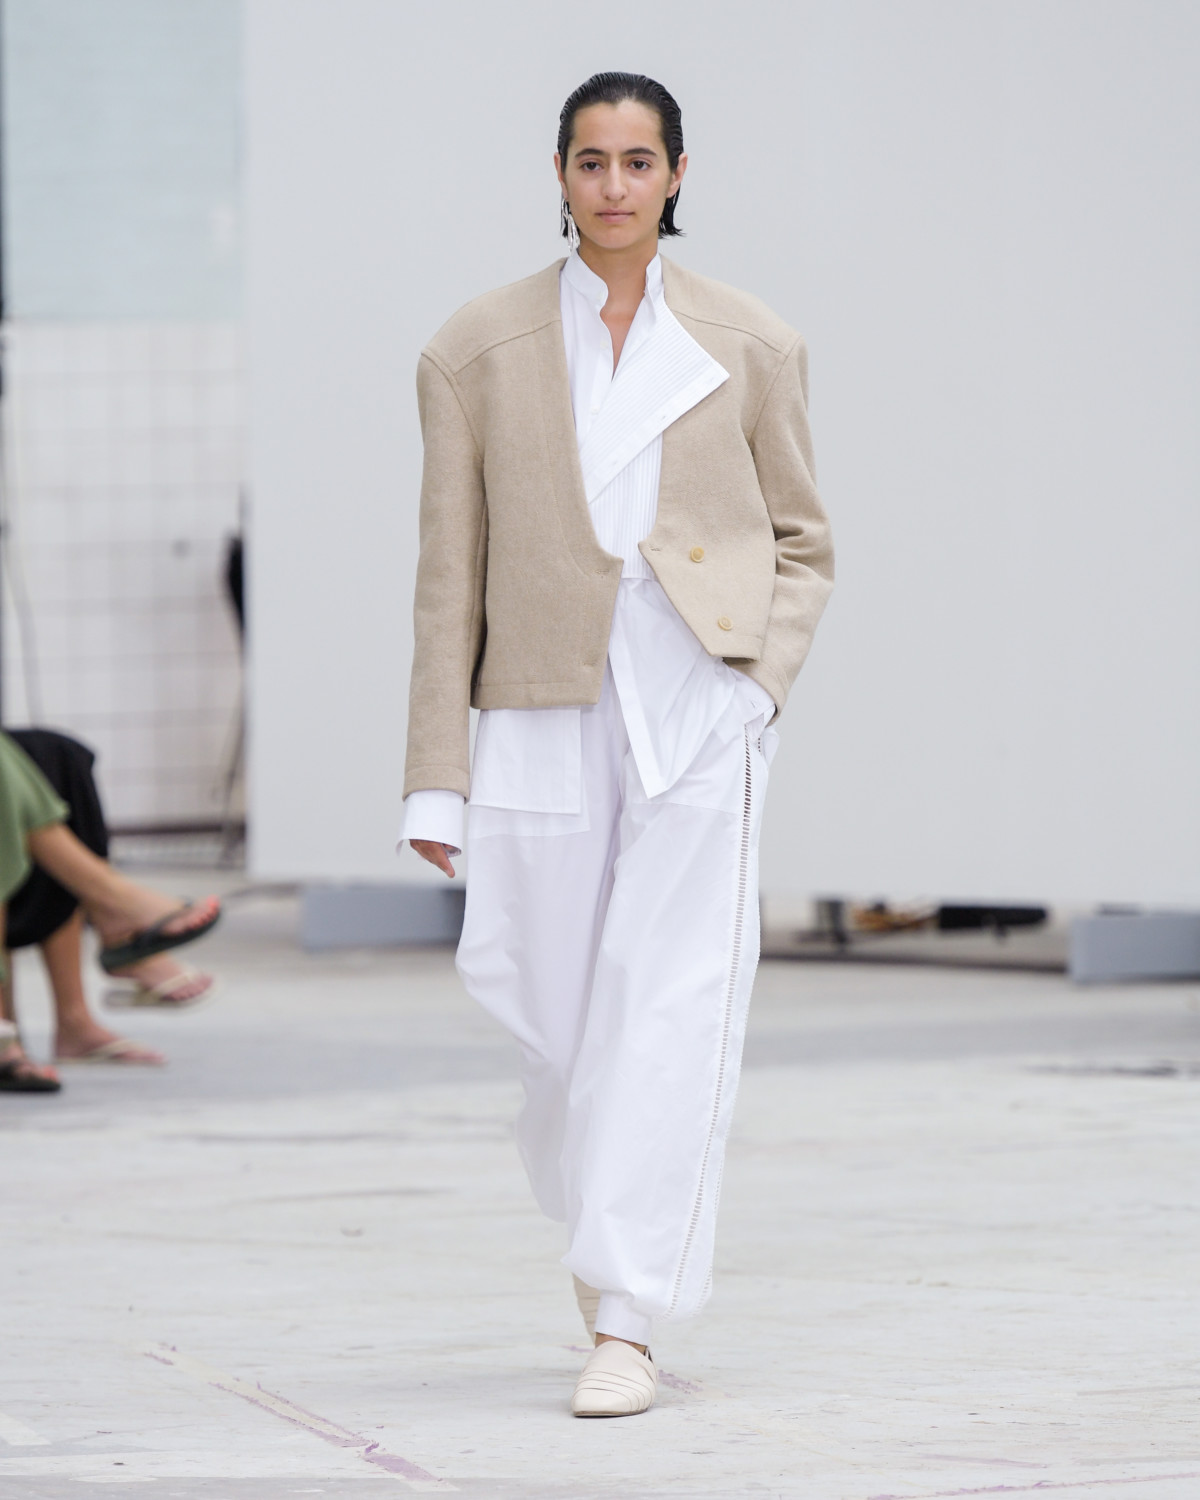 Mark Kenly Domino Tan Spring Summer 2021 Copenhagen